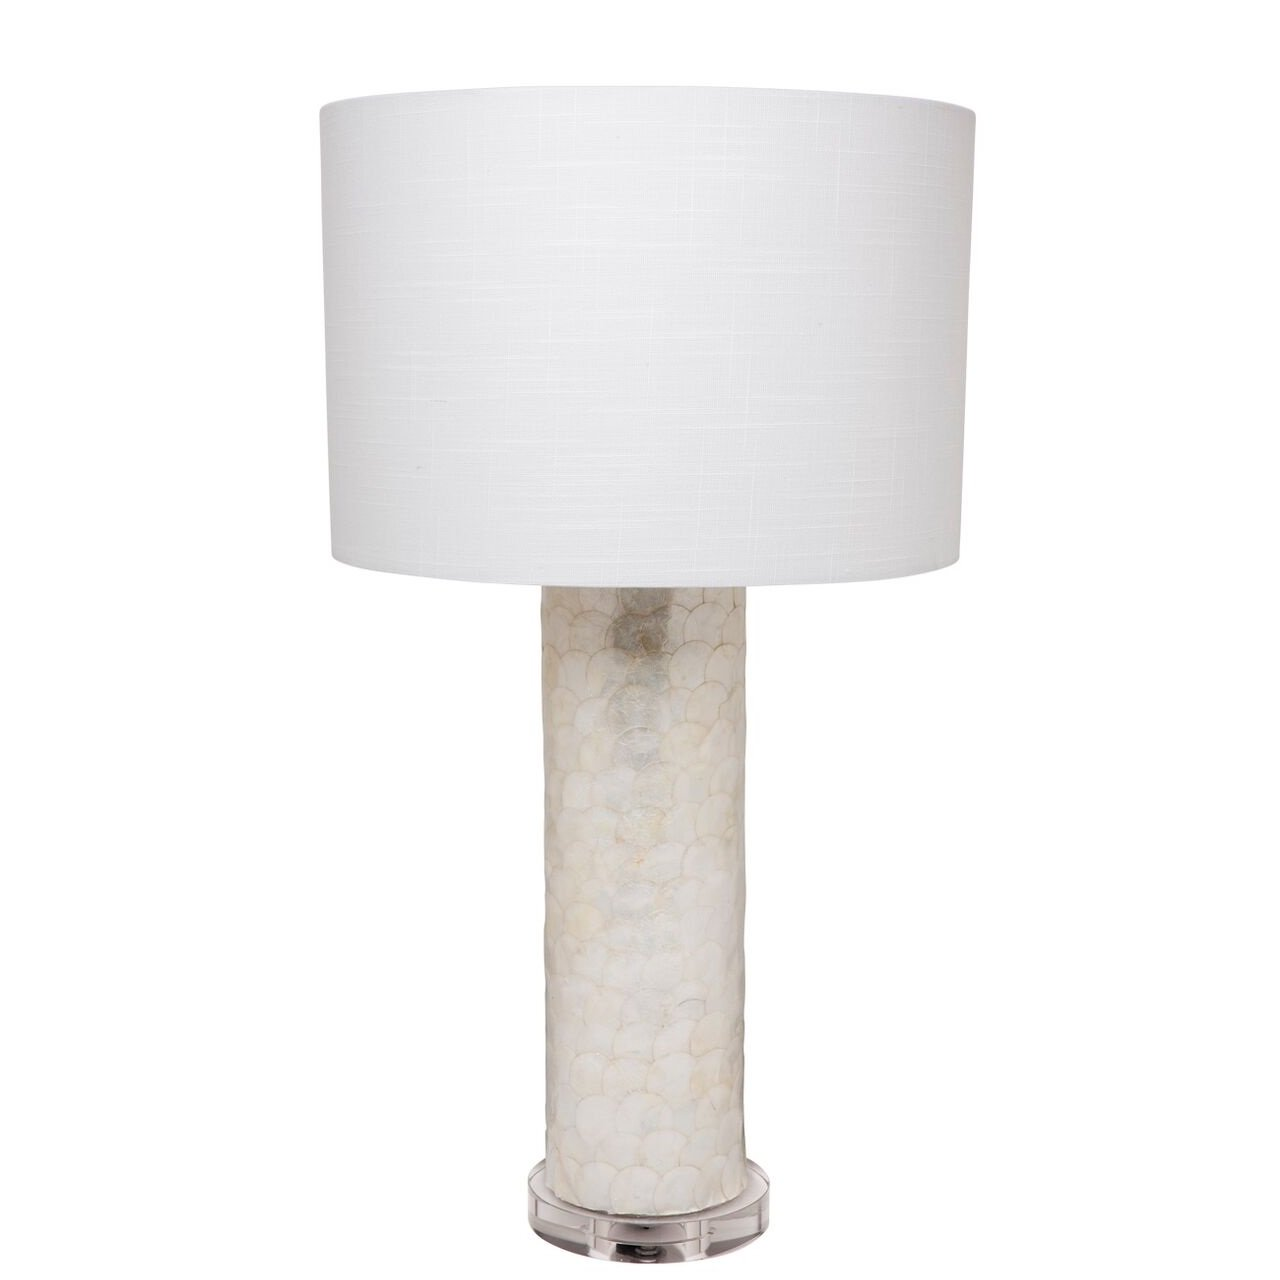 Torquay capiz shell table lamp the interior designer torquay capiz shell table lamp aloadofball Images